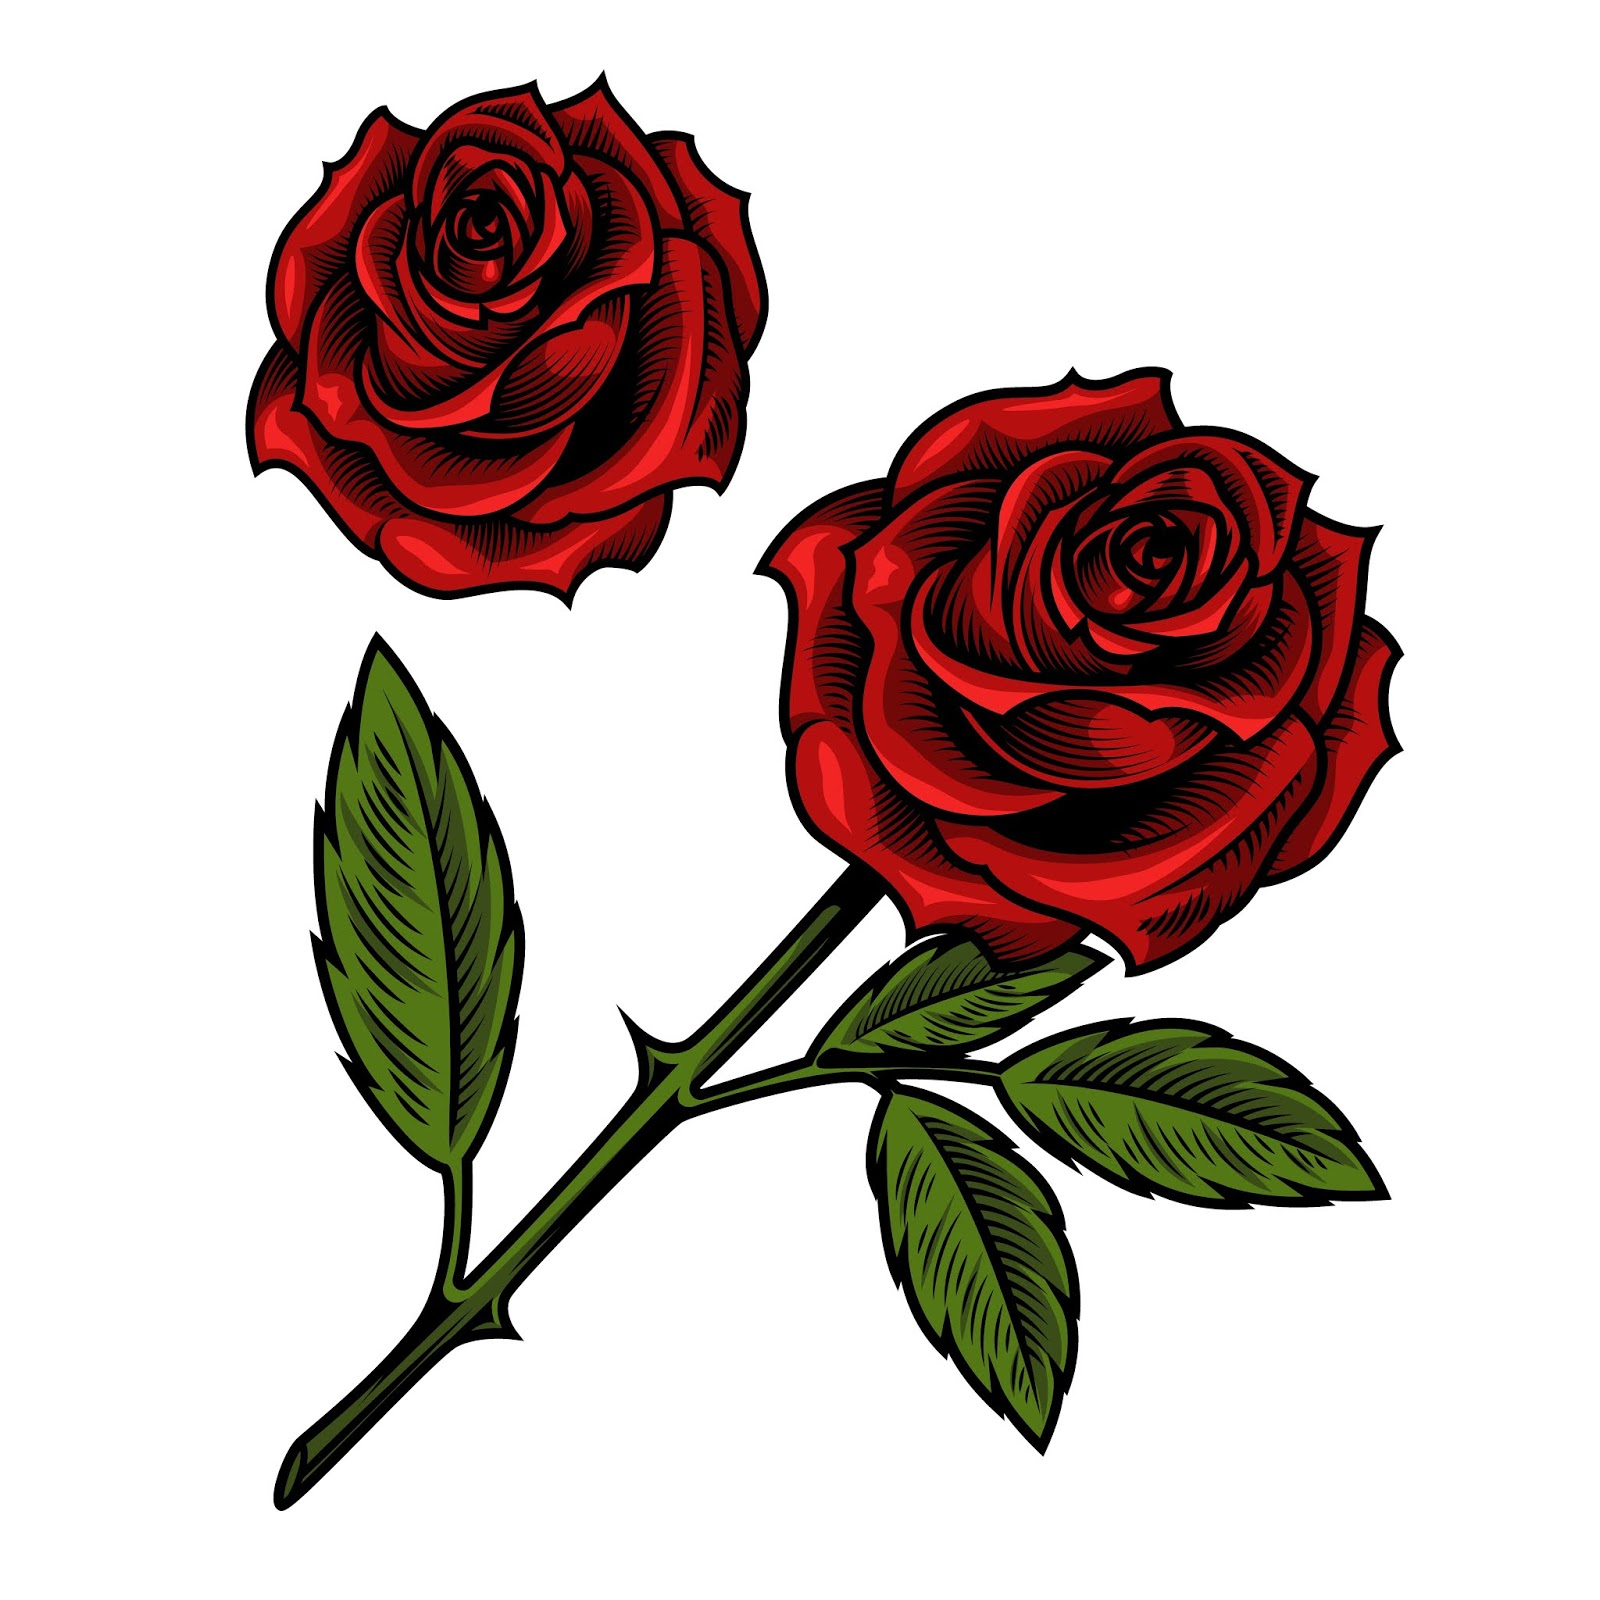 Single Beautiful Red Rose Free Download Vector CDR, AI, EPS and PNG Formats